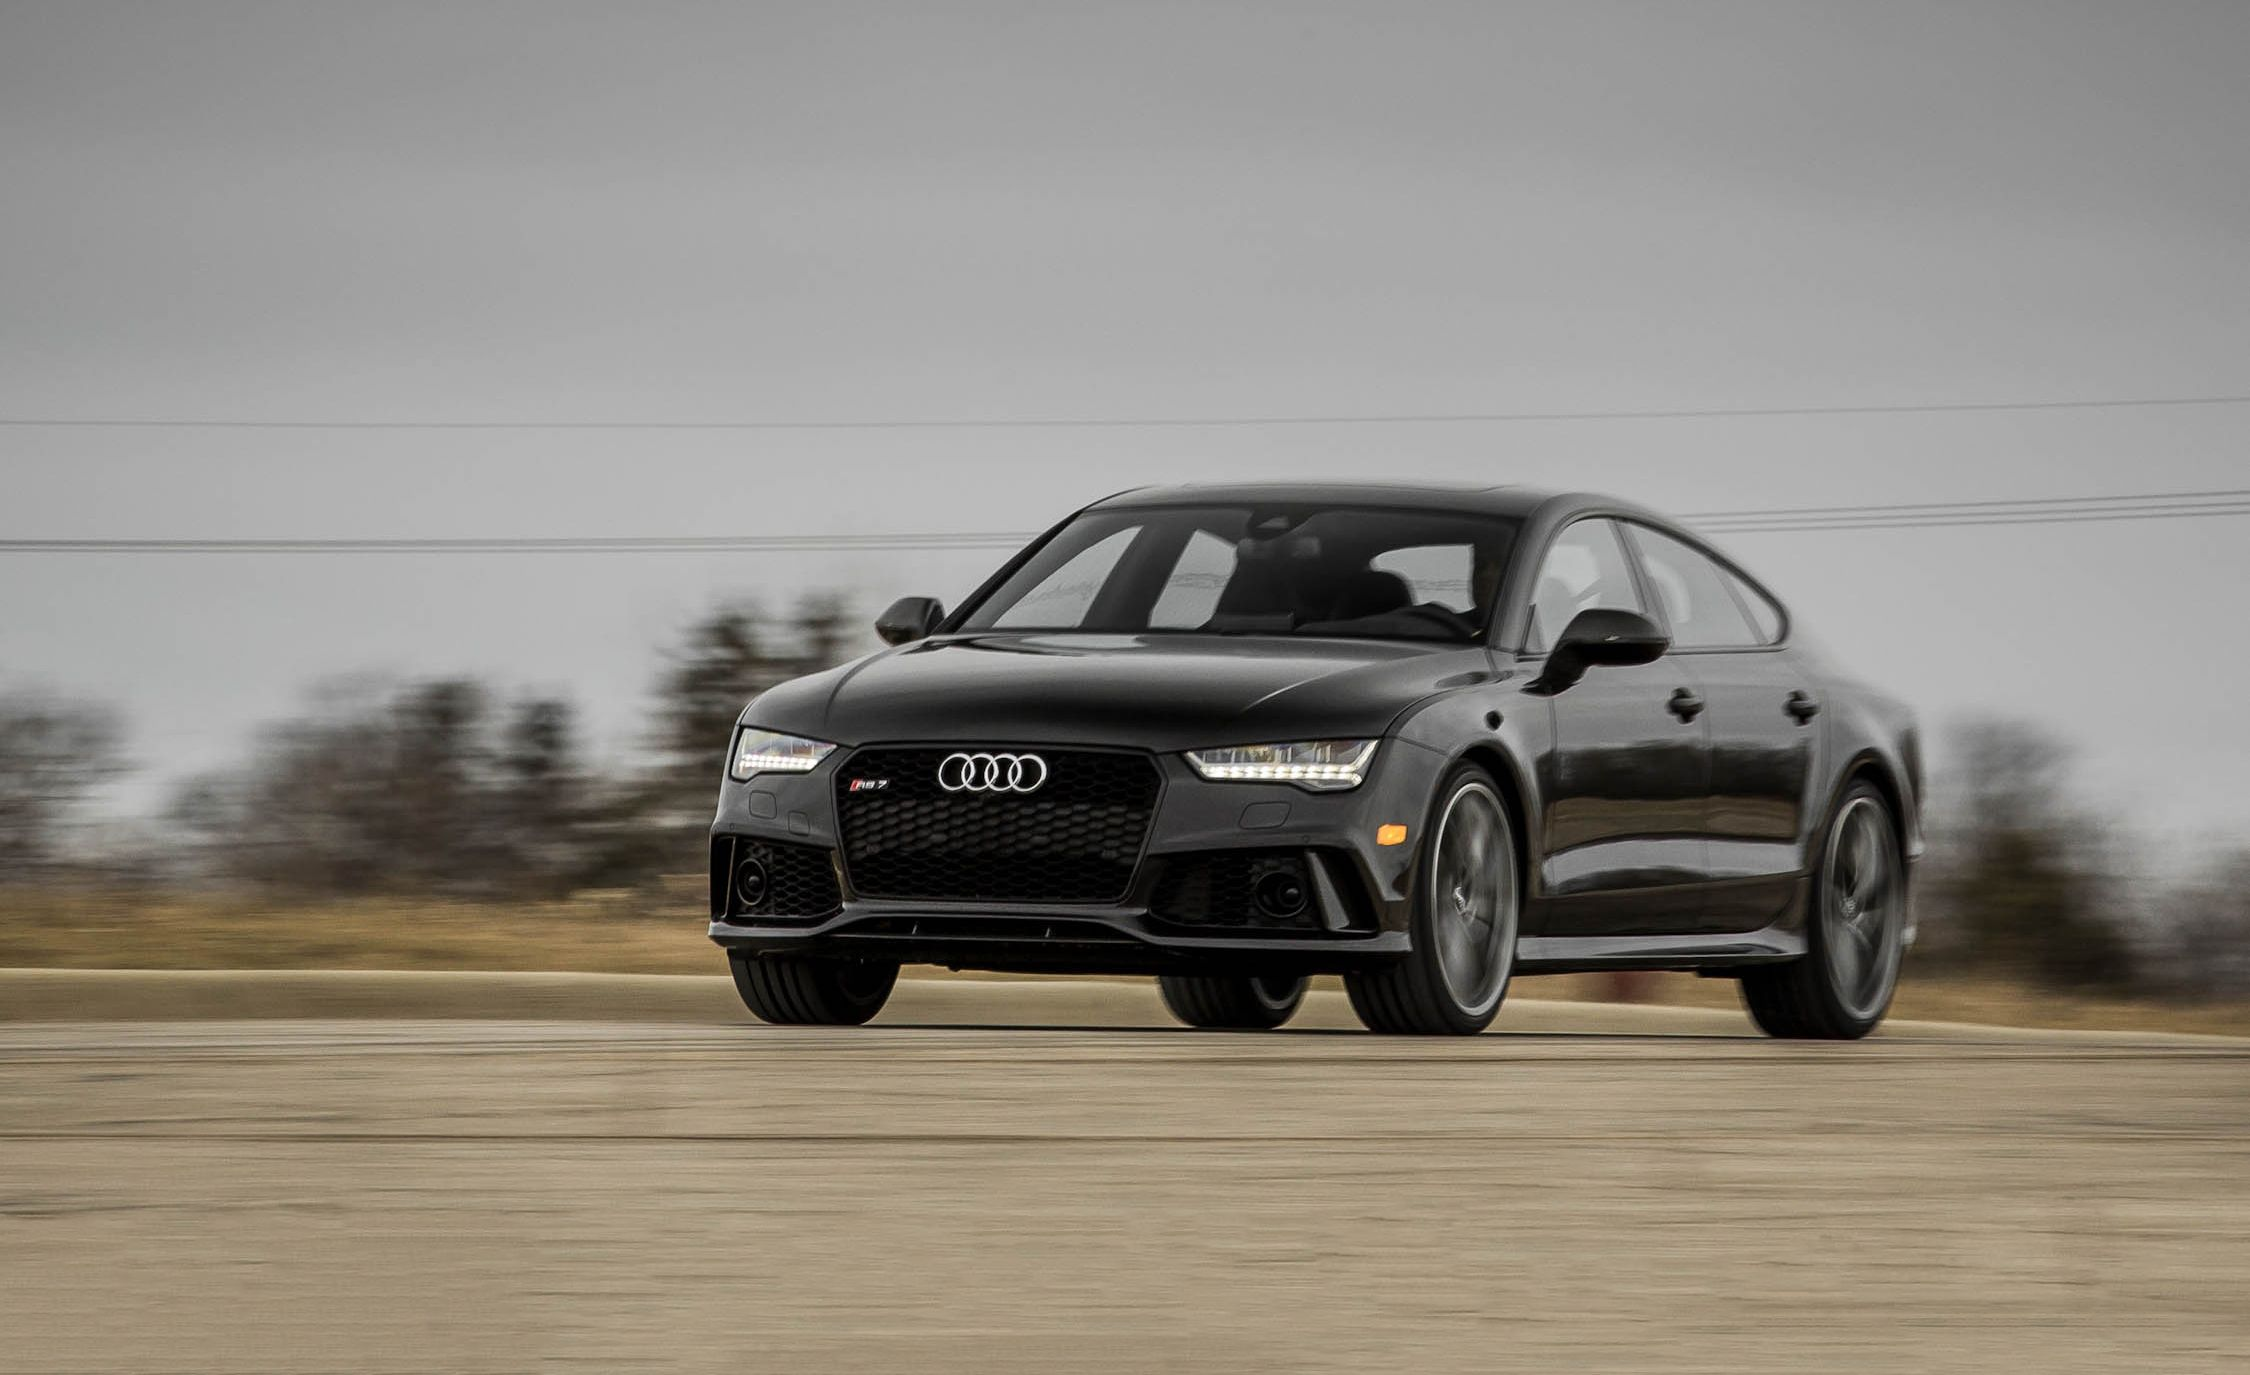 Audi RS7 Reviews Audi RS7 Price s and Specs